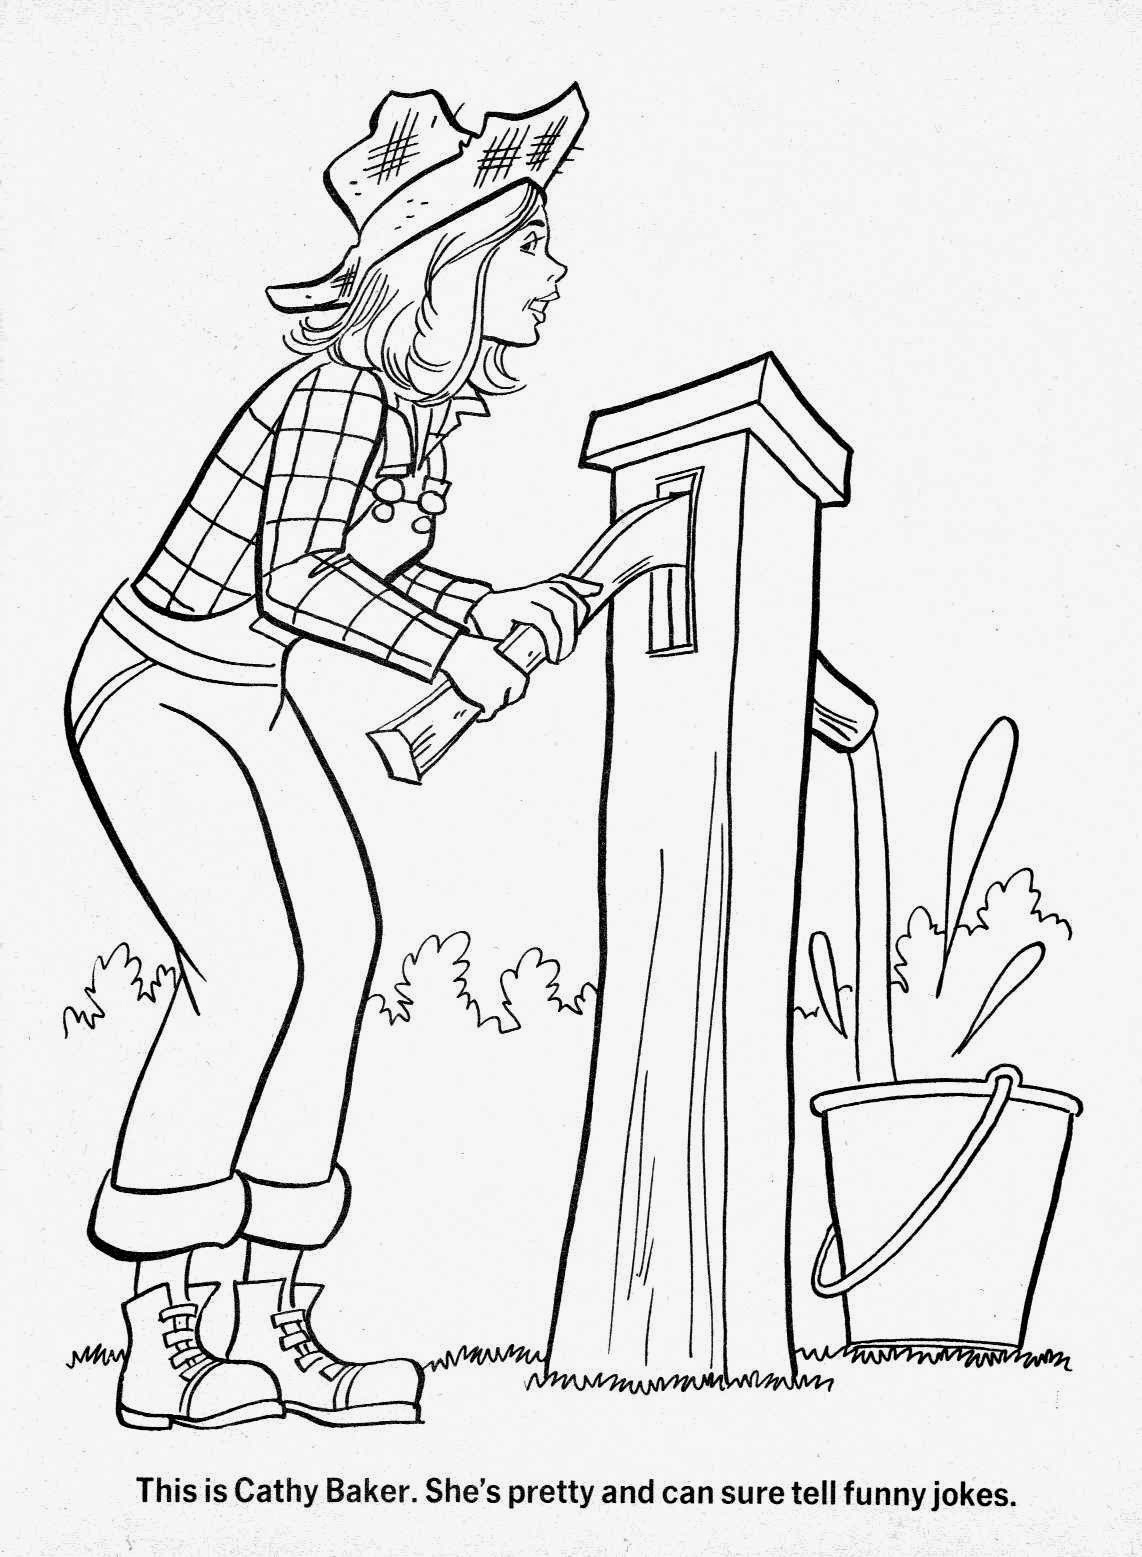 mr yuk coloring pages - photo#13